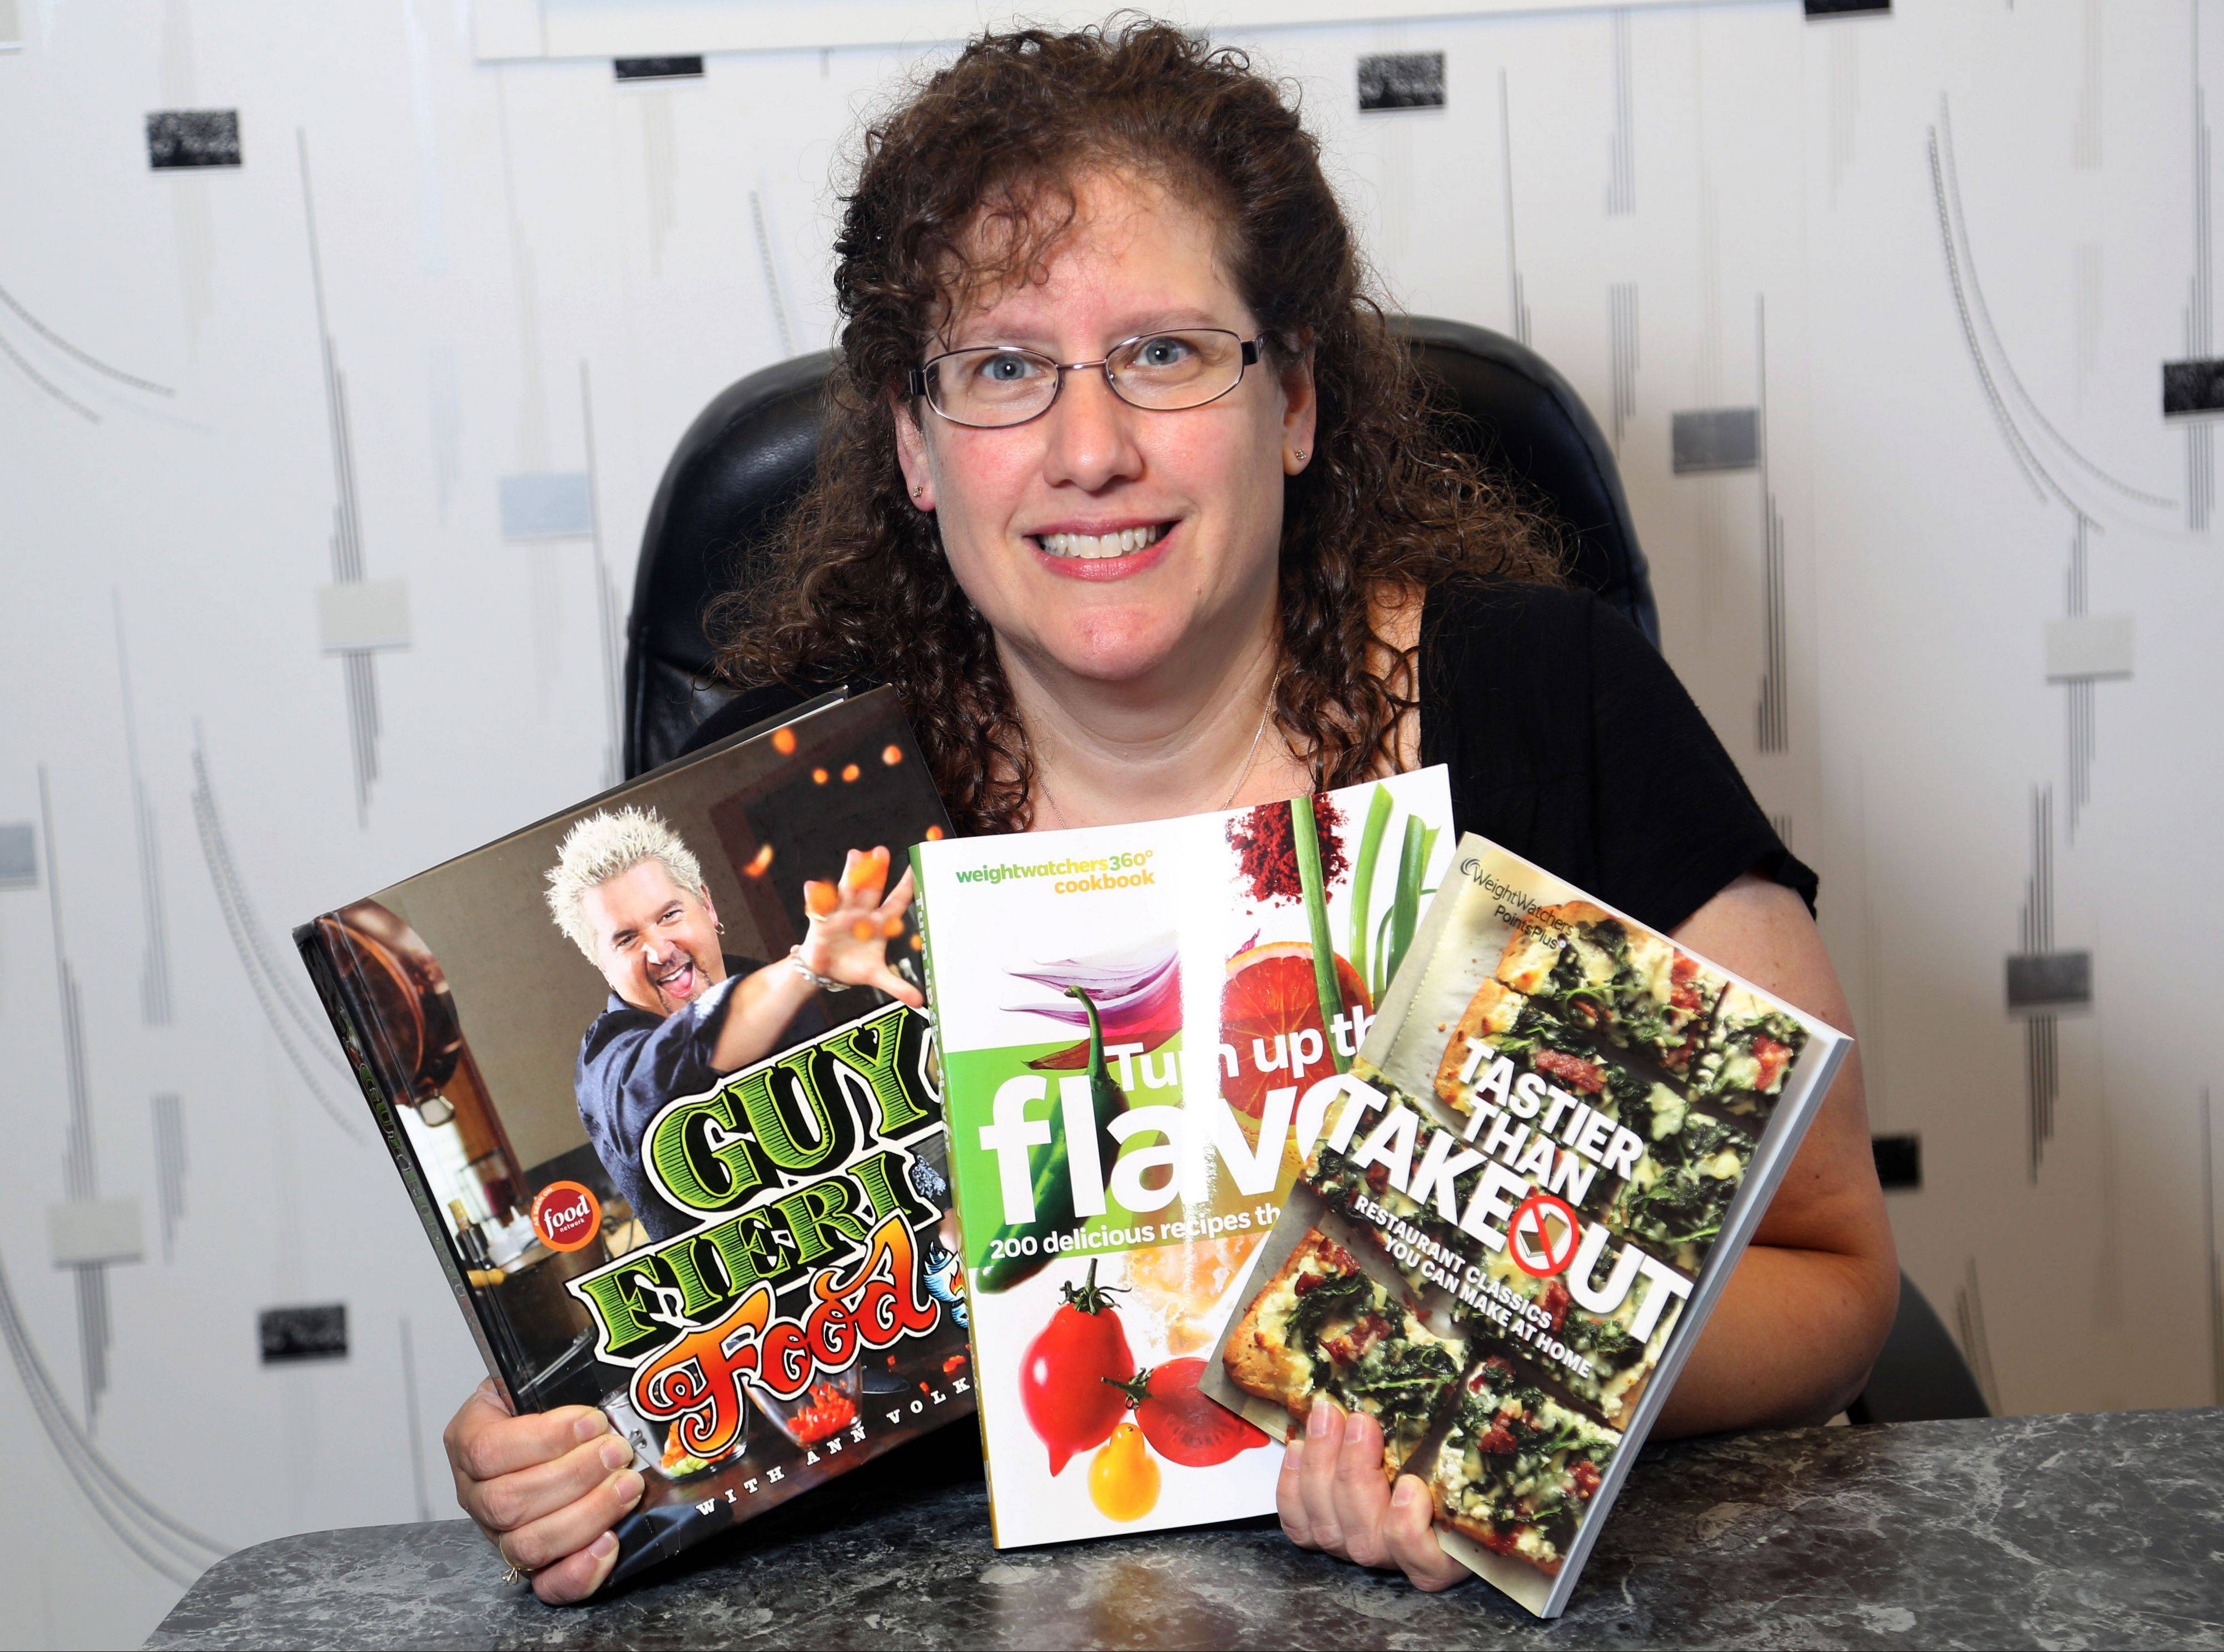 Dr. Karen Grobman of Buffalo Grove hold some of her favorite cook books. Grobman is one of 16 contestants in the Cook of the Week Challenge.